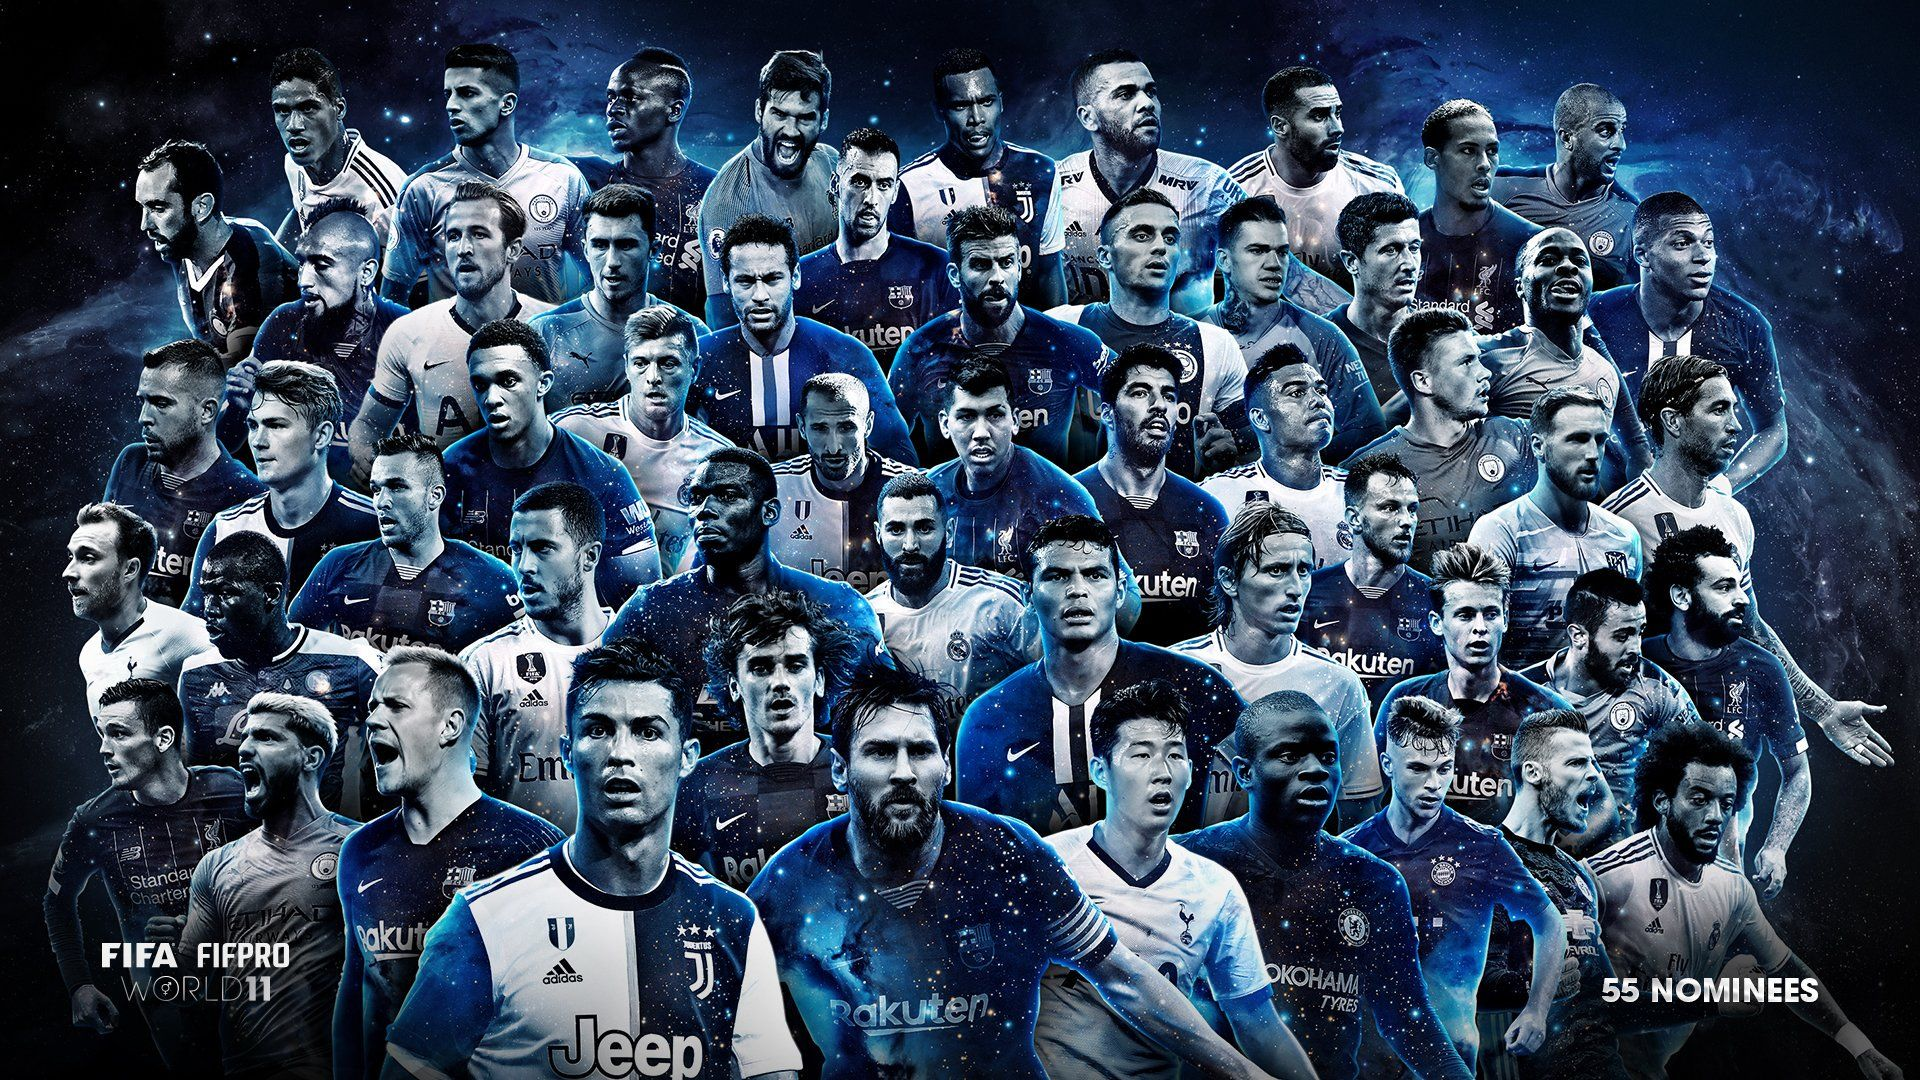 City Players Have Been Nominated In The FIFPro